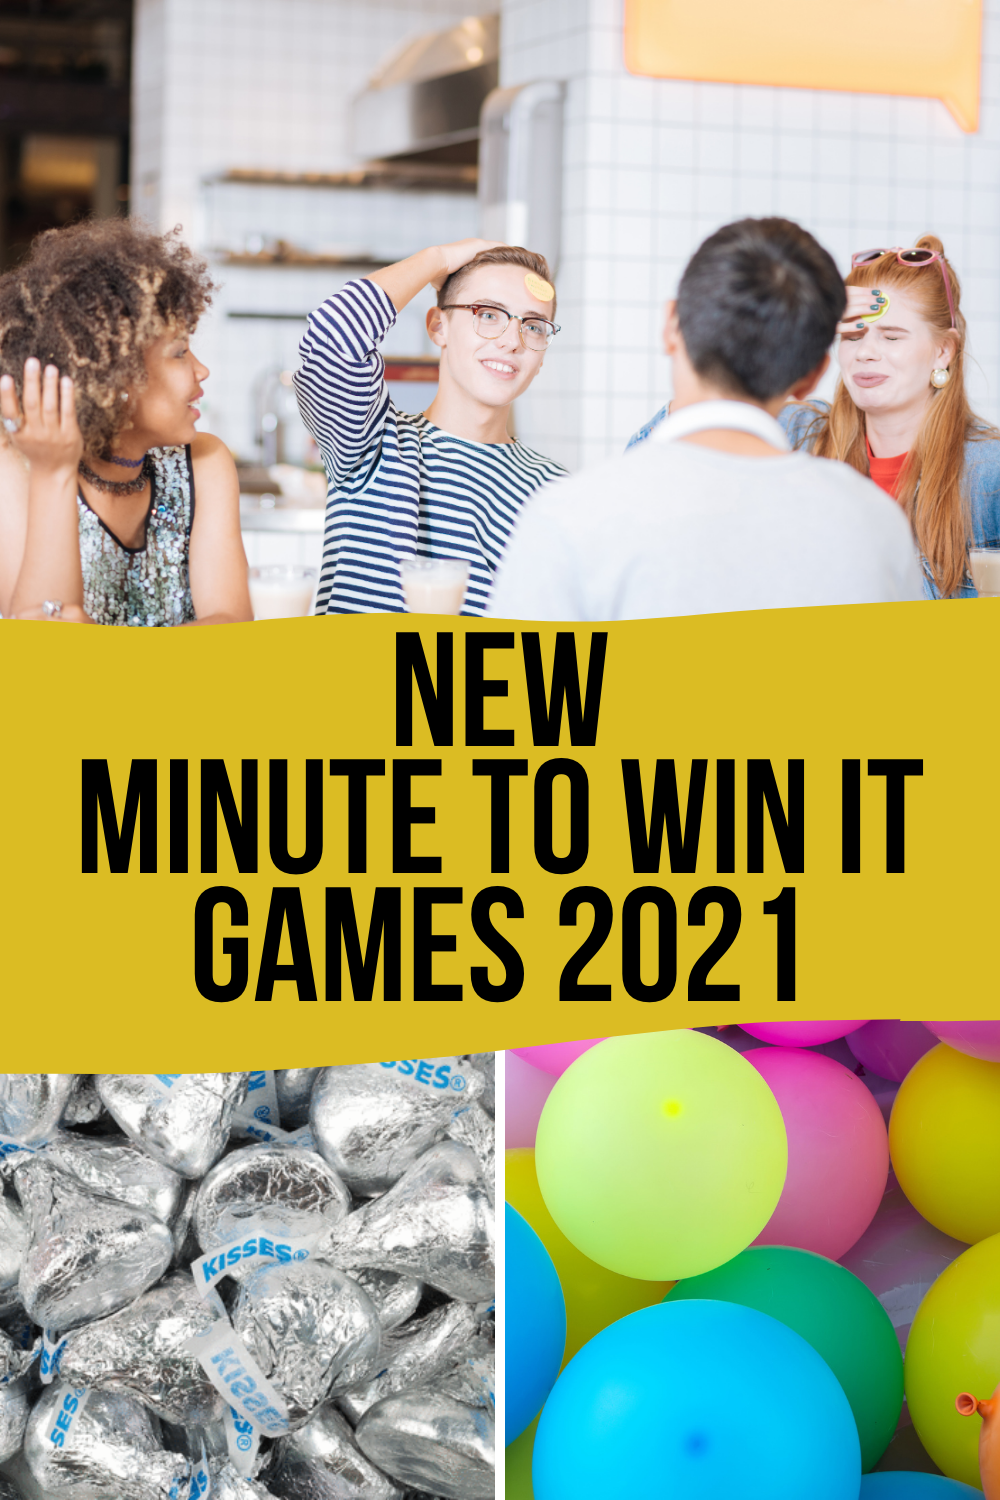 New Minute to Win It Games 2021